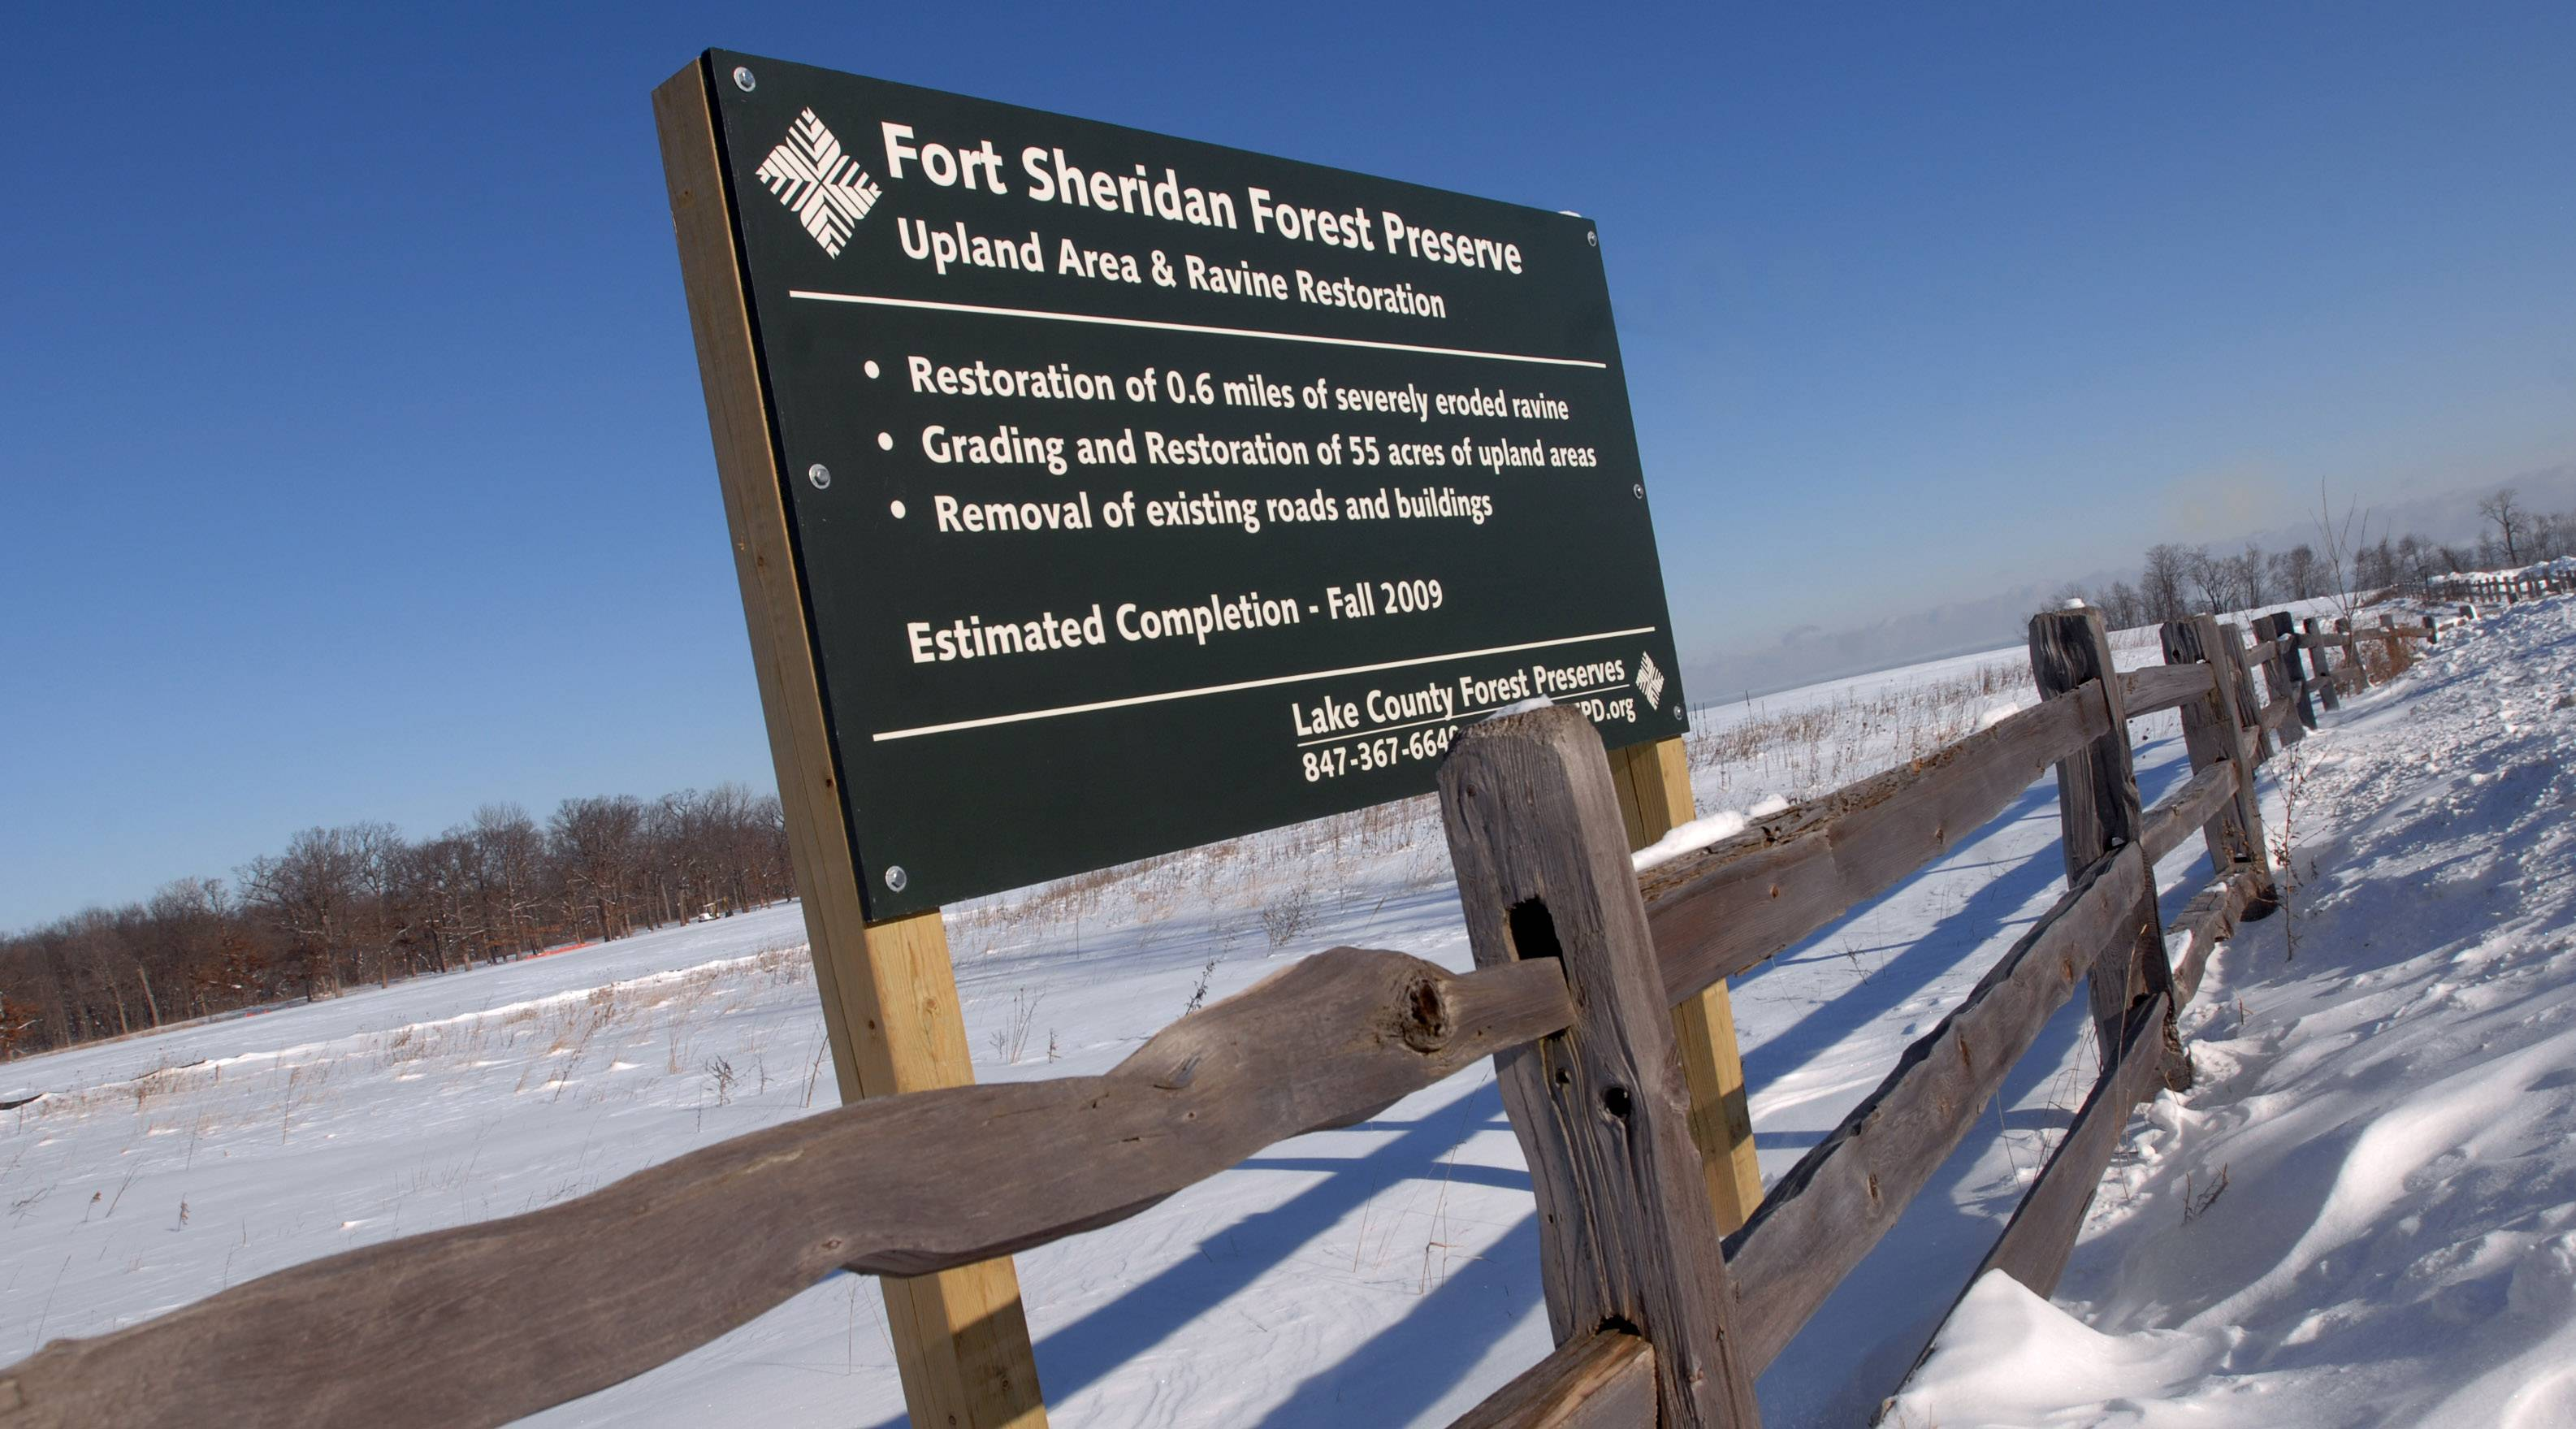 PAUL VALADE/pvalade@dailyherald.com, 2009  Lake County Forest Preserve District officials could vote to ask the U.S. Army to let them abandon golf plans at the Fort Sheridan Forest Preserve near Highland Park. The Army used to own the land.